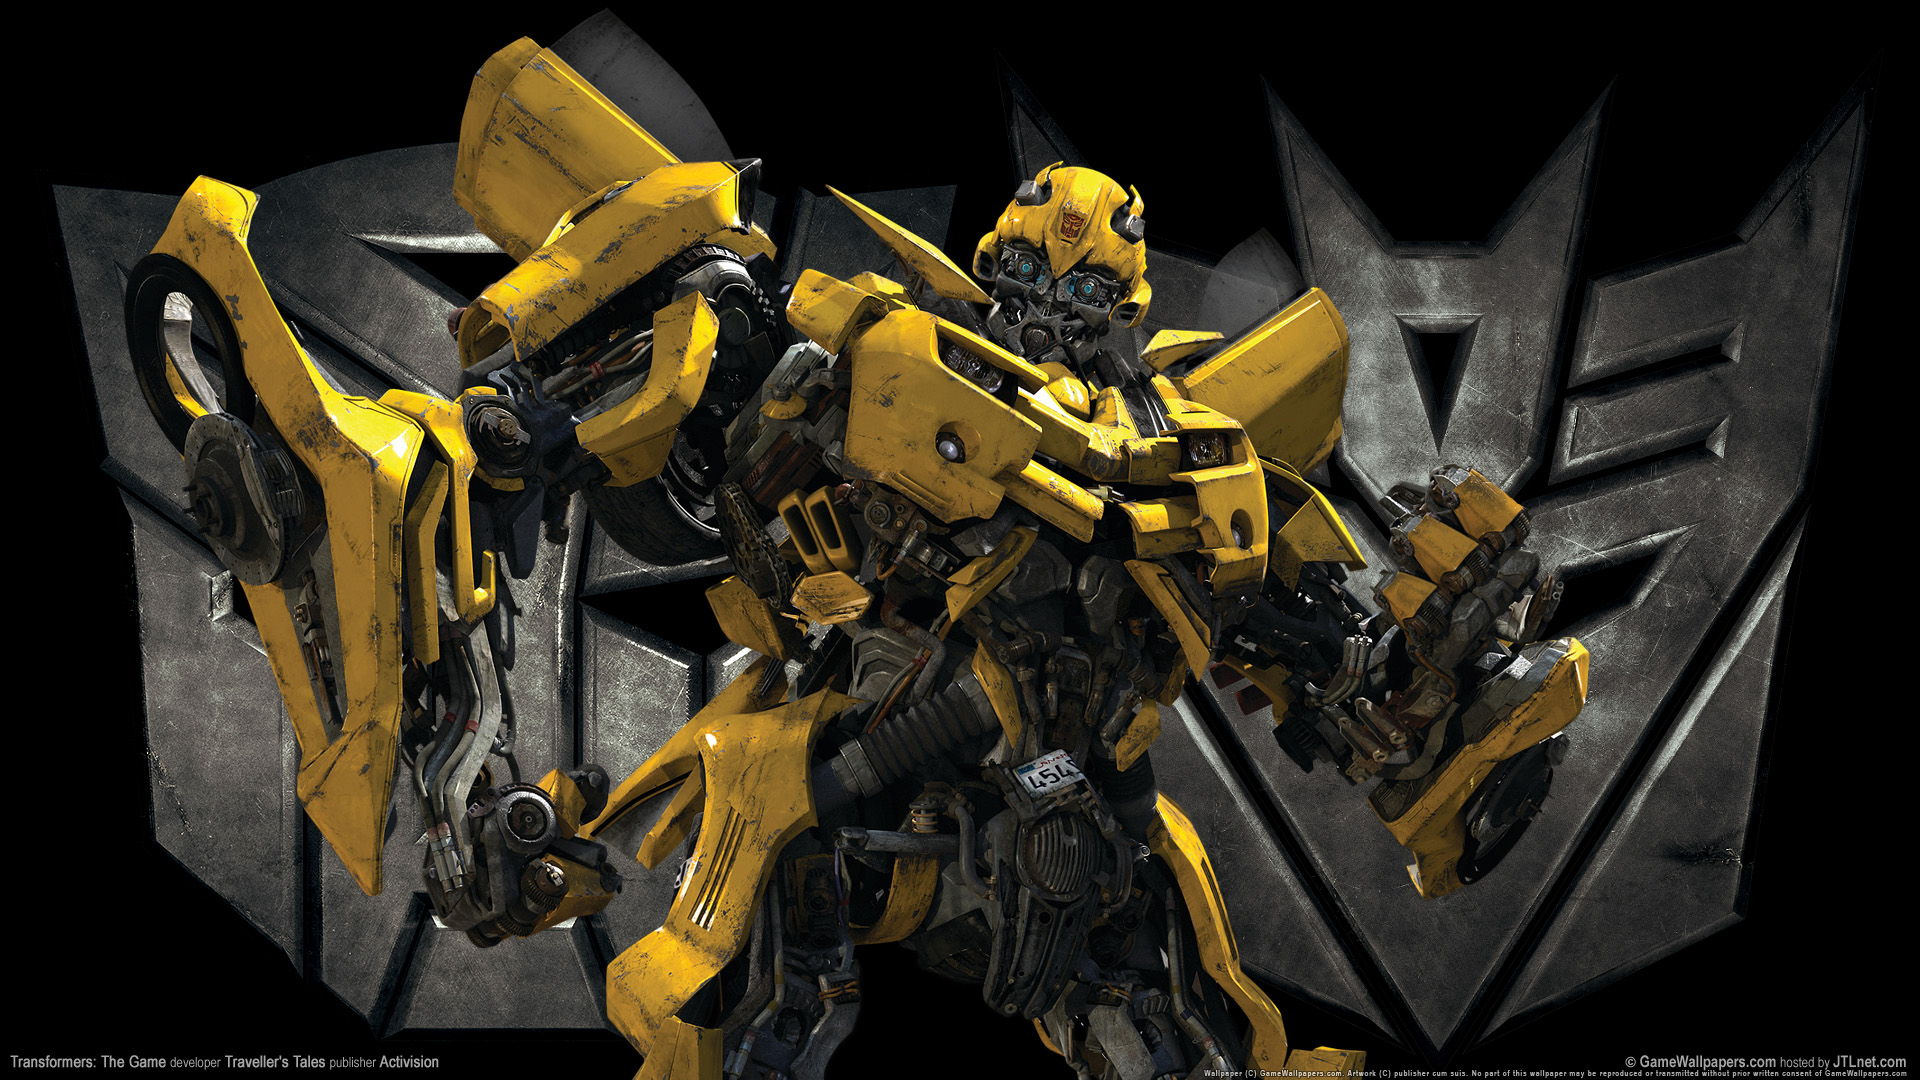 Transformers The Game Bumble Bee 4224883 1920x1080 All For Desktop 1920x1080